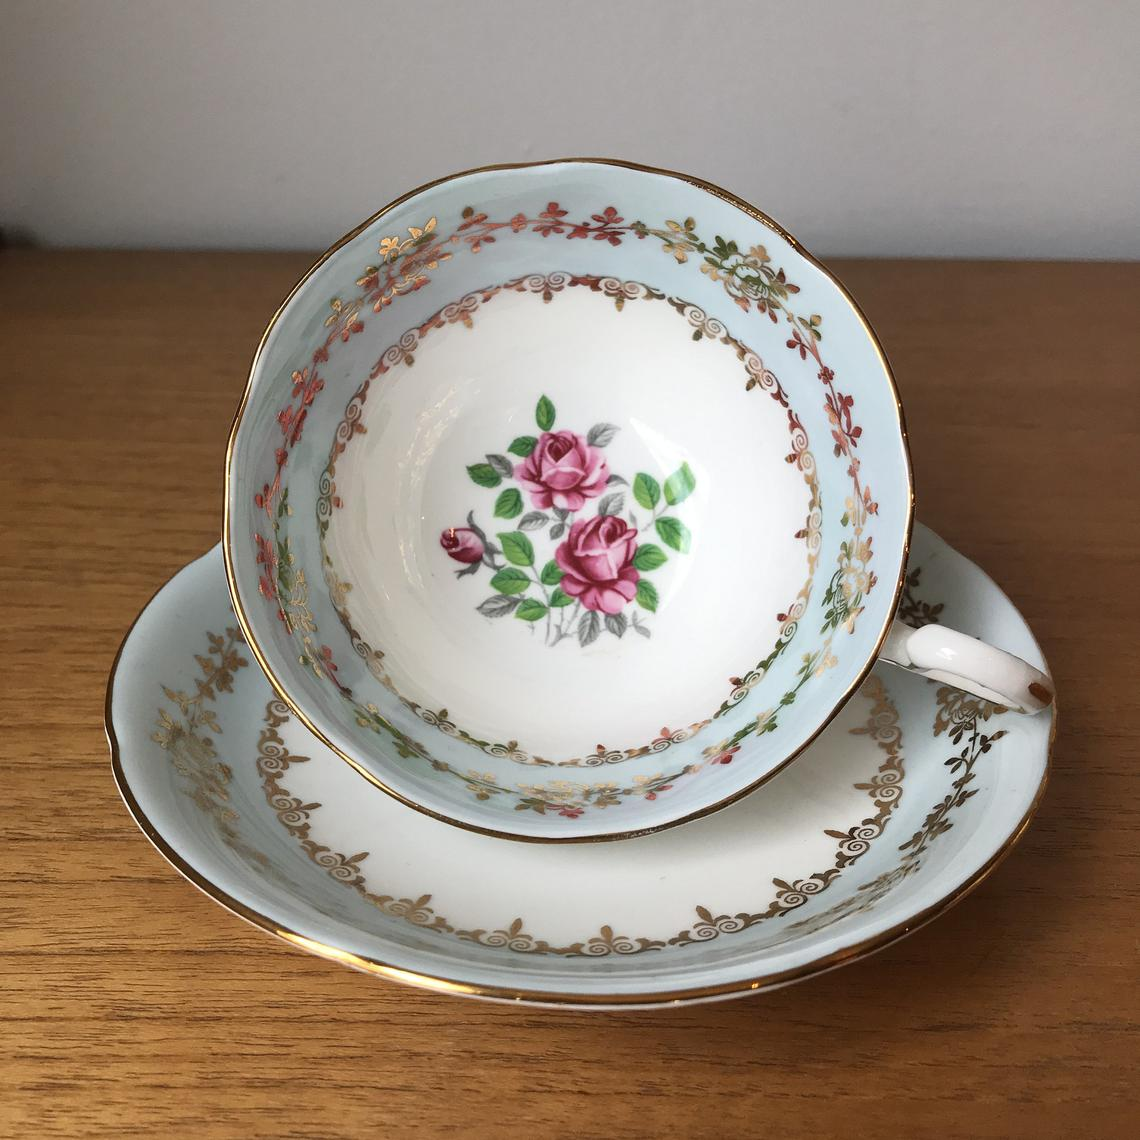 Royal Grafton Pale Blue Border Tea Cup and Saucer, Pink Roses Teacup and Saucer, Vintage Fine Bone China